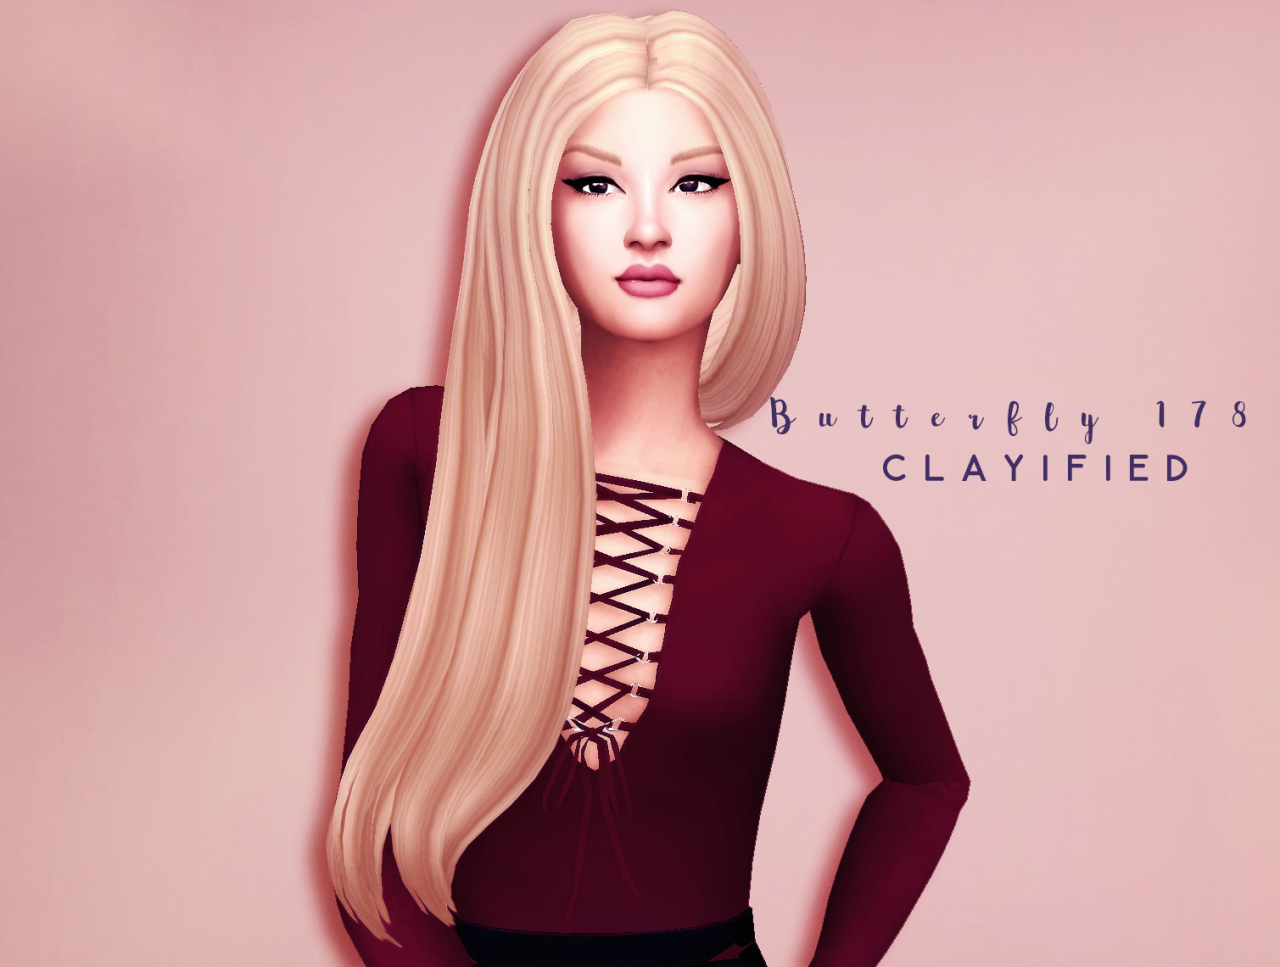 Lana CC Finds - prados-sims: @hallowsimss Butterfly 178 ...